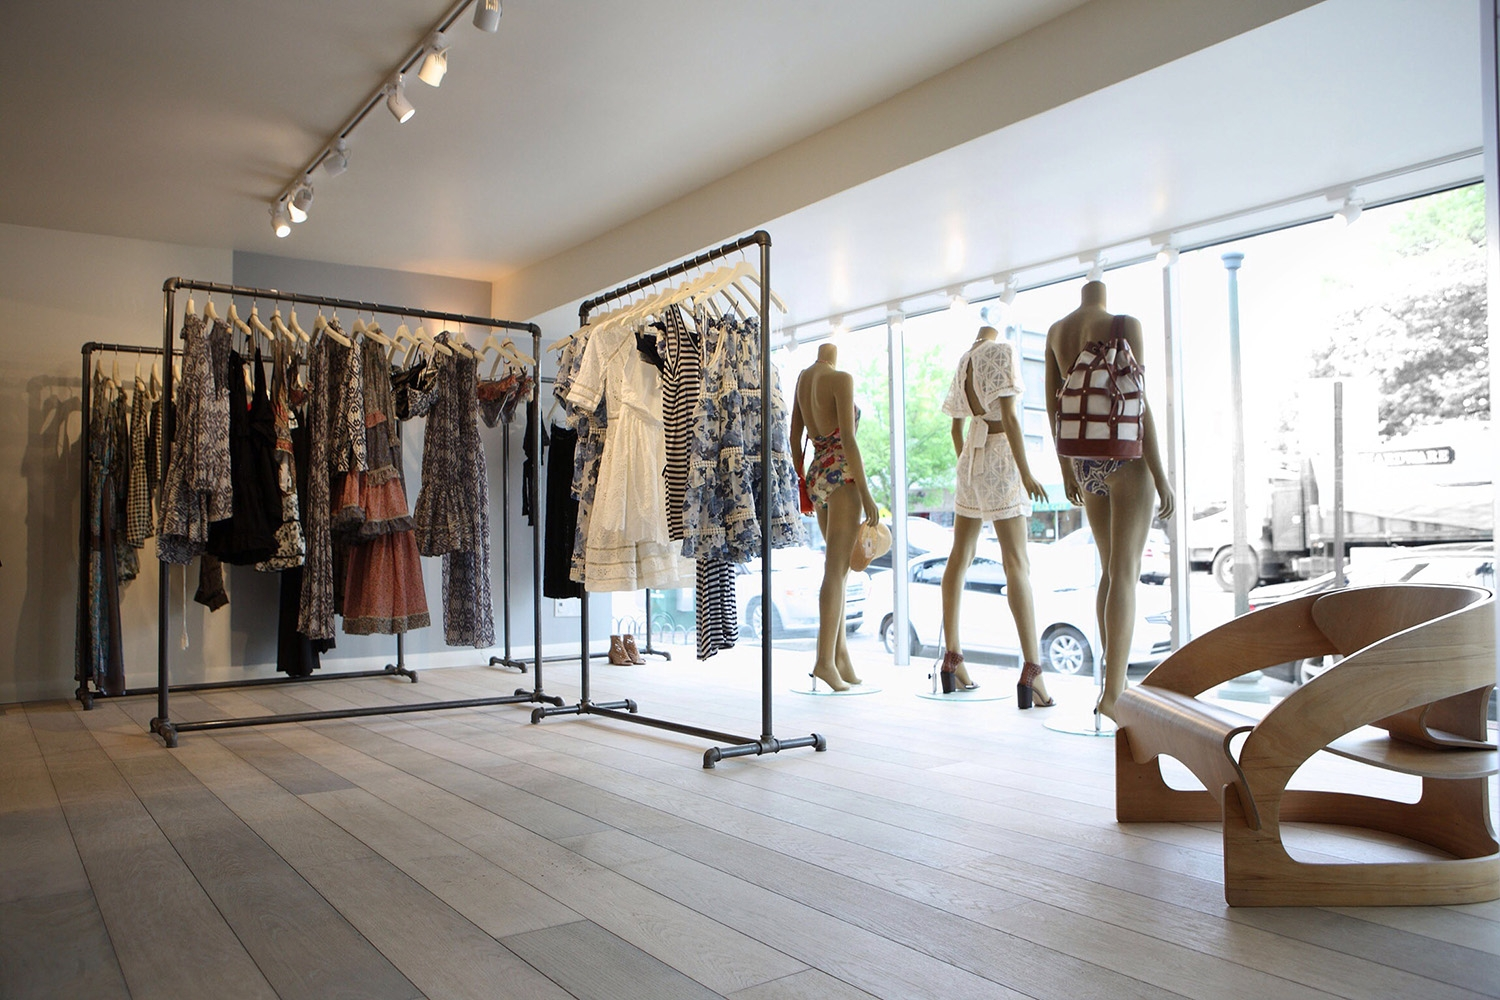 Minimalistic clothing racks and architectural furniture inside our East Hampton store